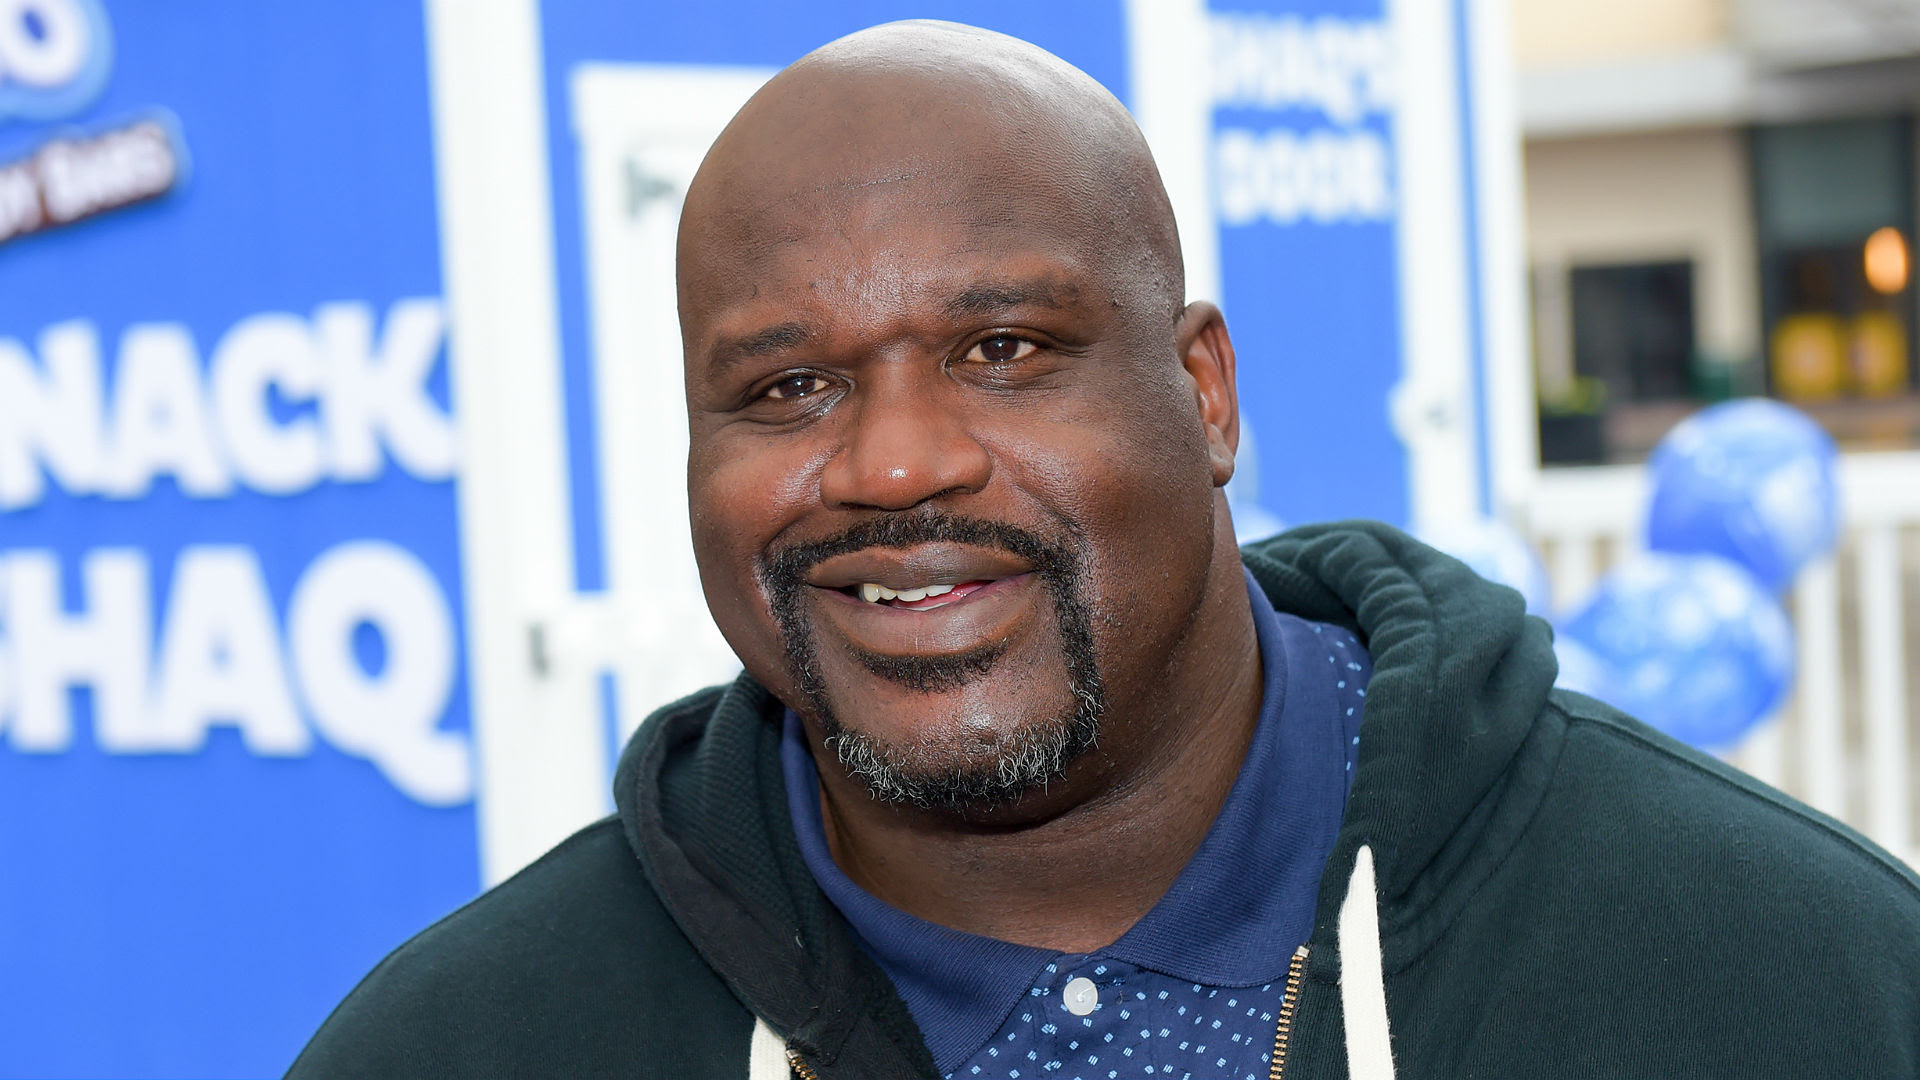 Shaquille O'Neal gets sent through two tables in 'AEW Dynamite' tag team match